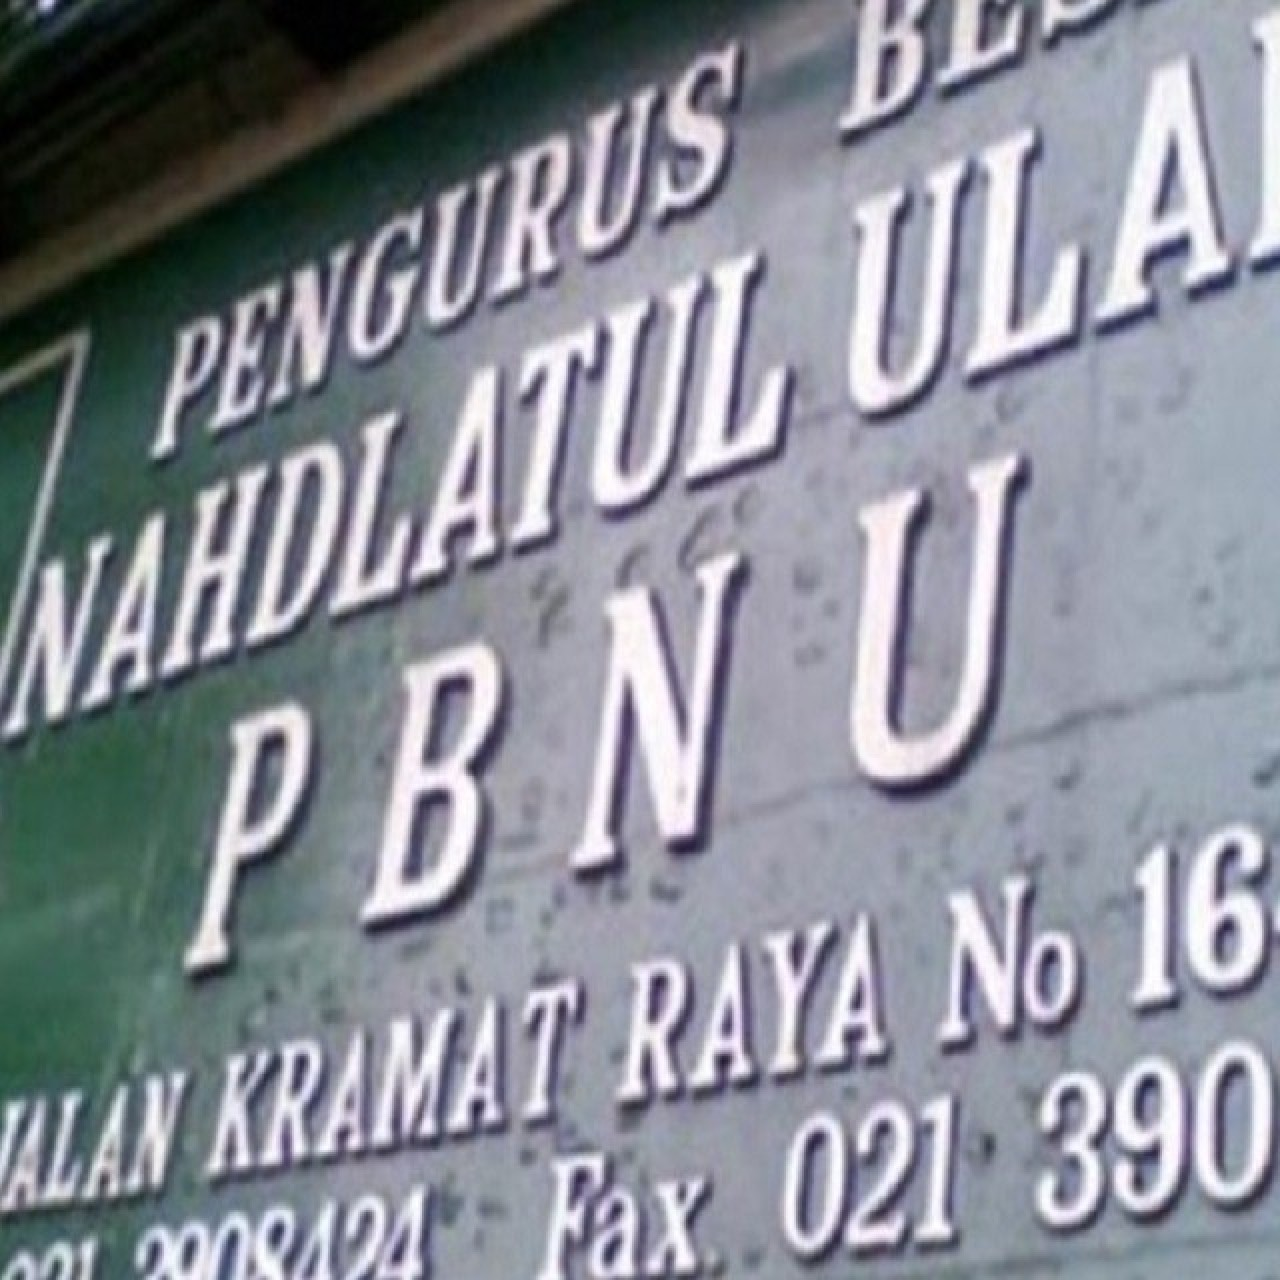 Requirements for would-be general chairman of PBNU